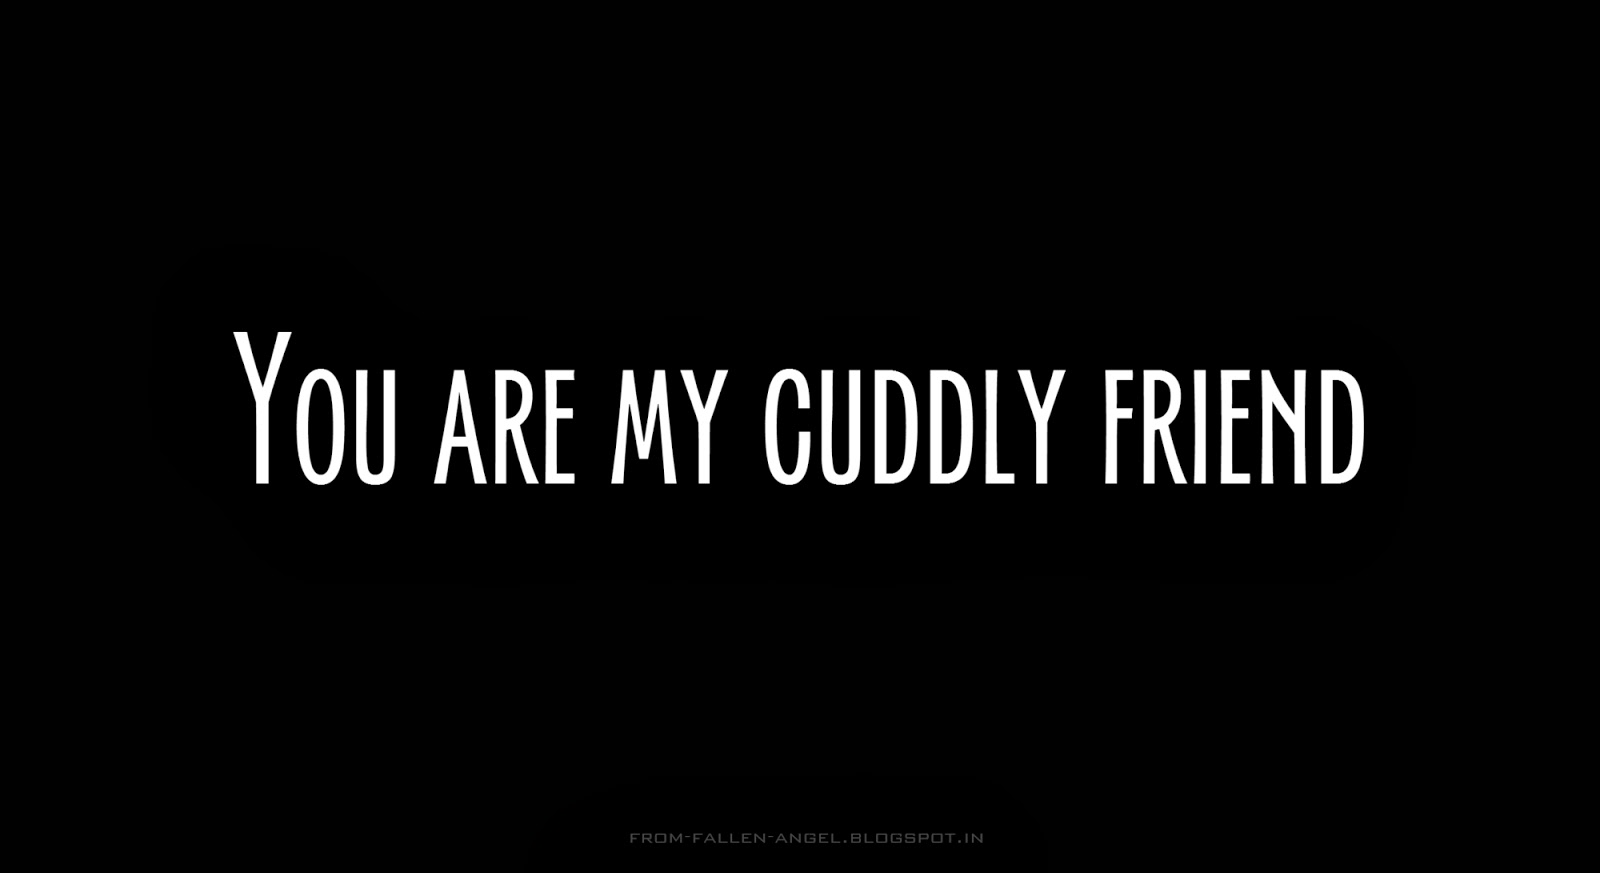 You are my cuddly friend